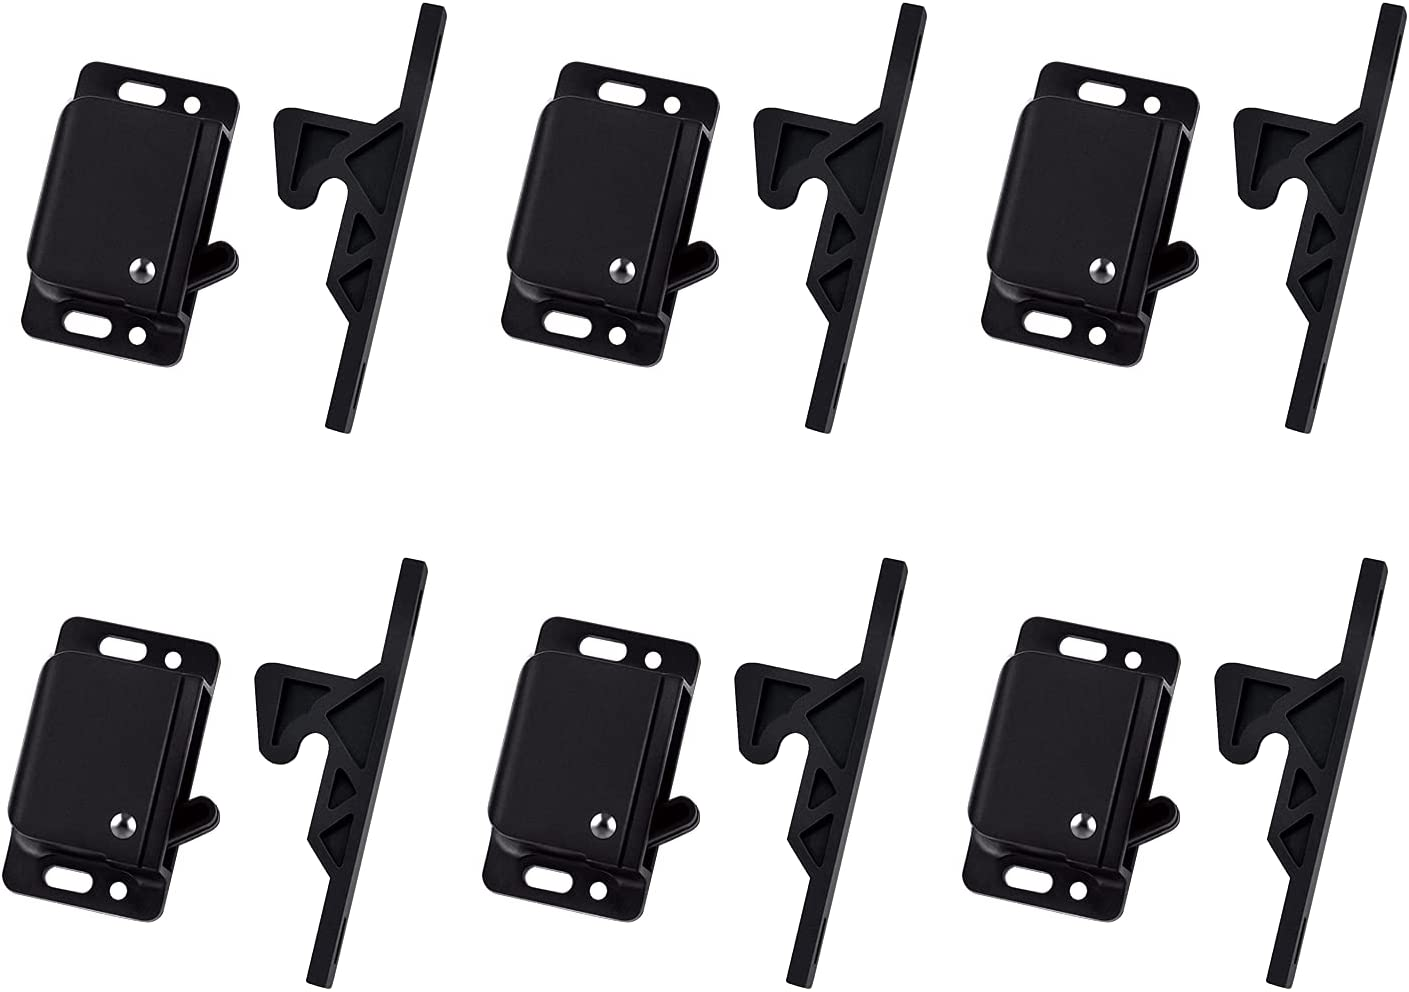 6 Pack Cabinet Door Latch Limited Miami Mall price sale RV Drawer and Home Latches for